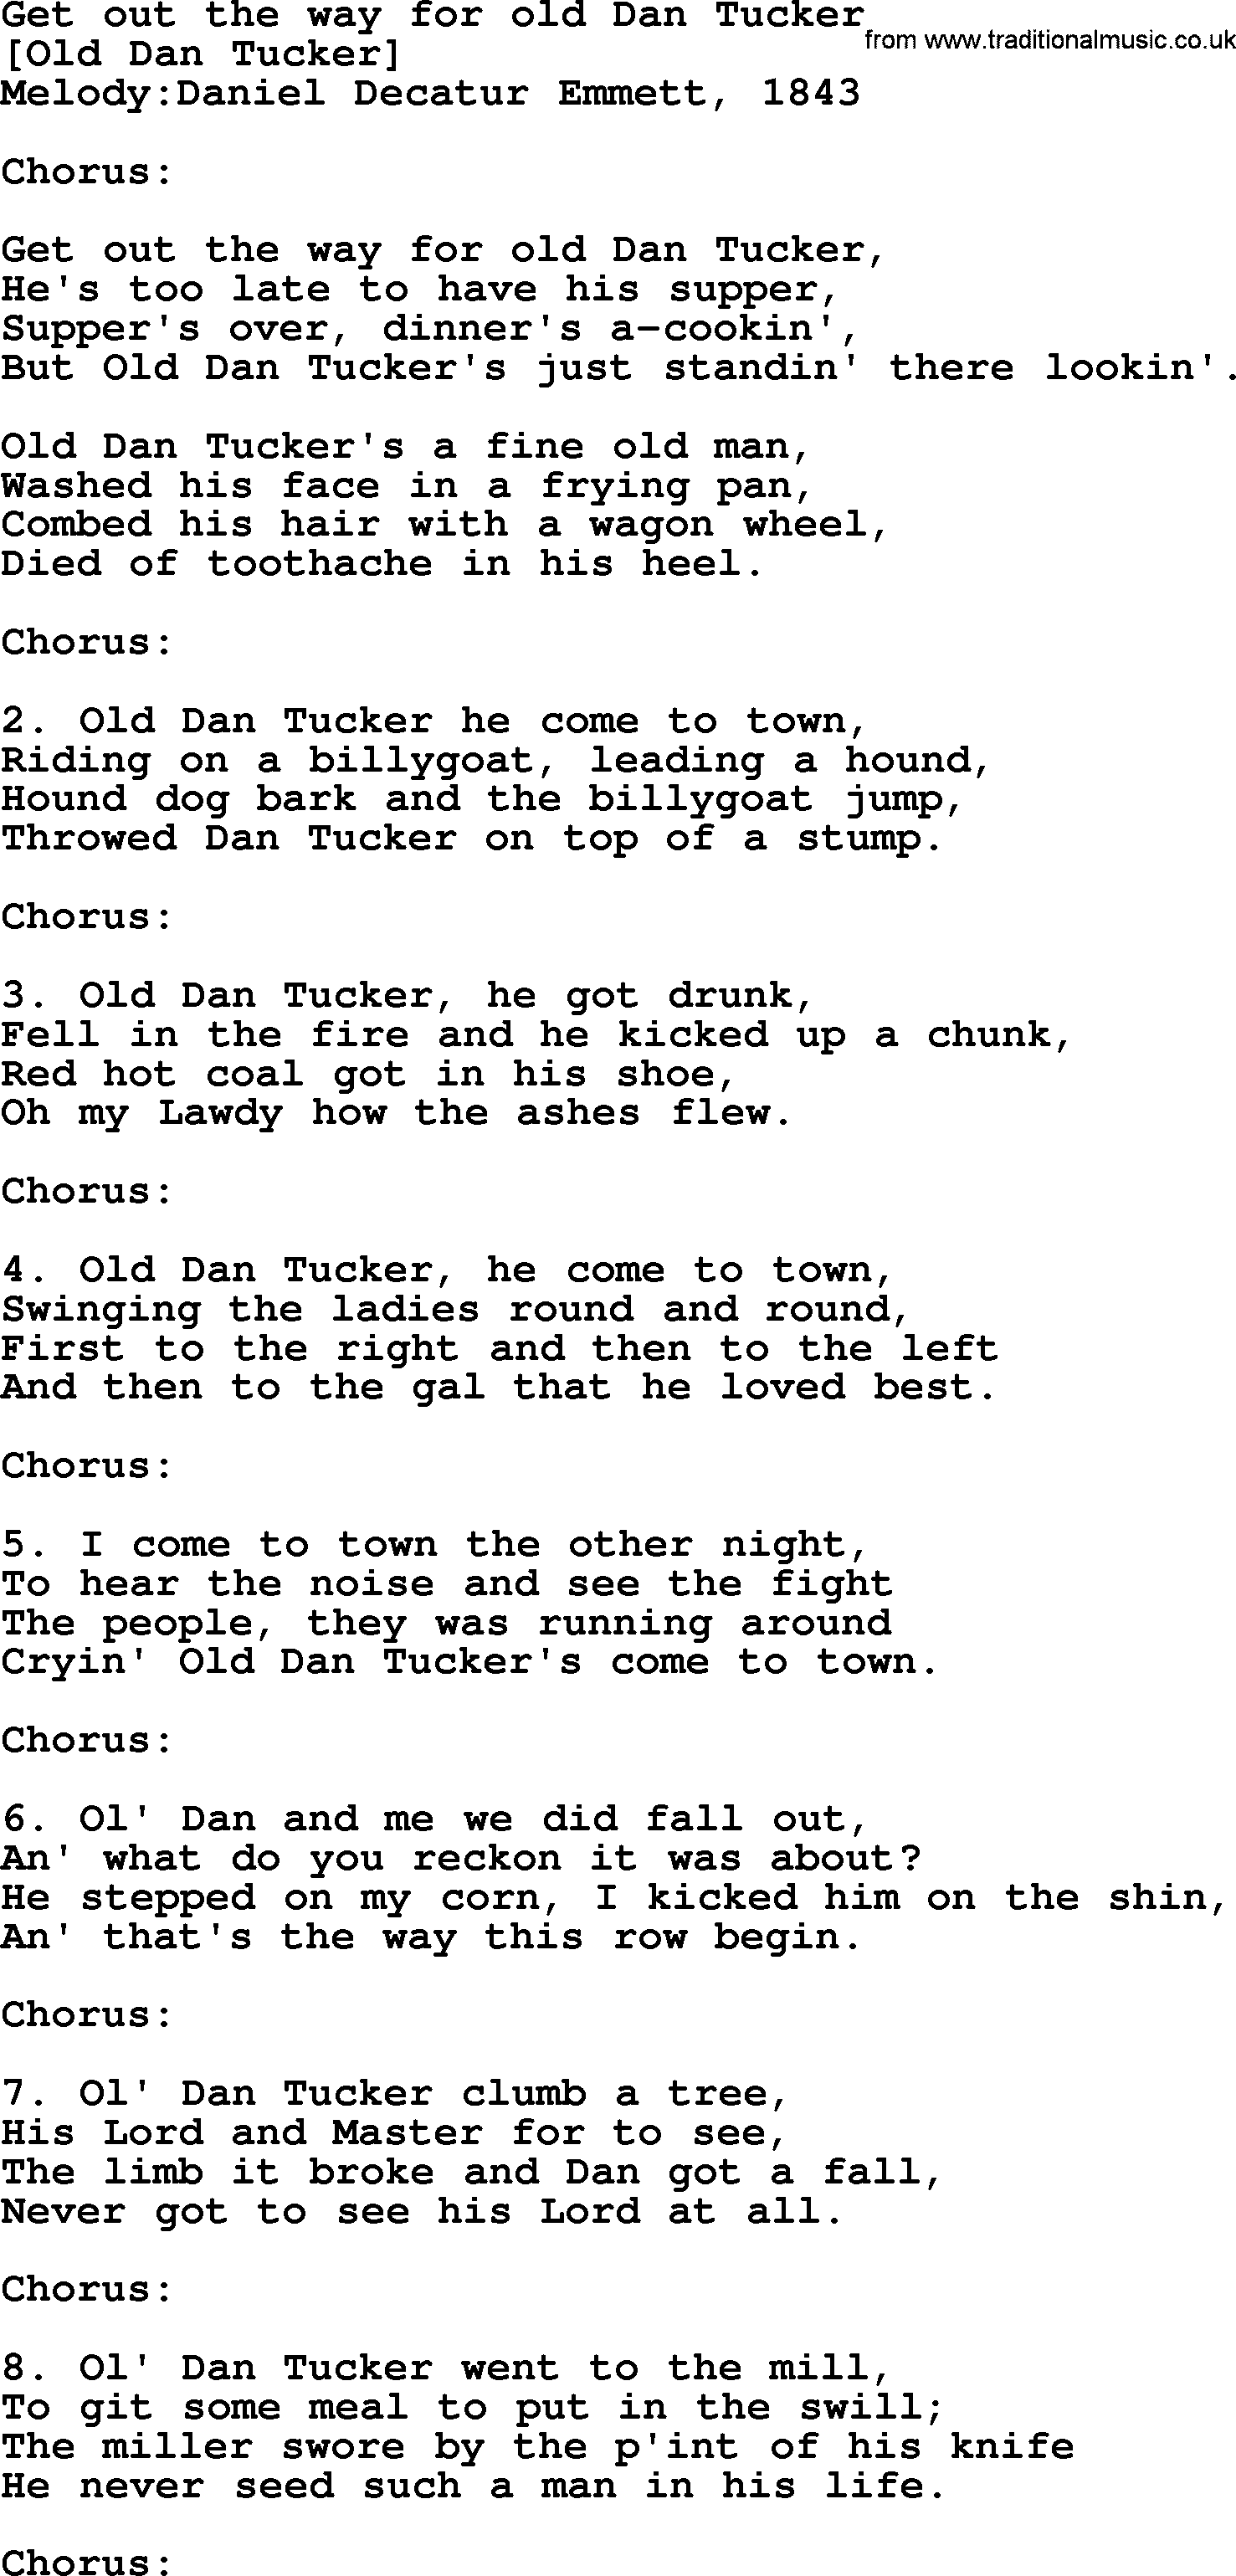 Dan tucker lyrics